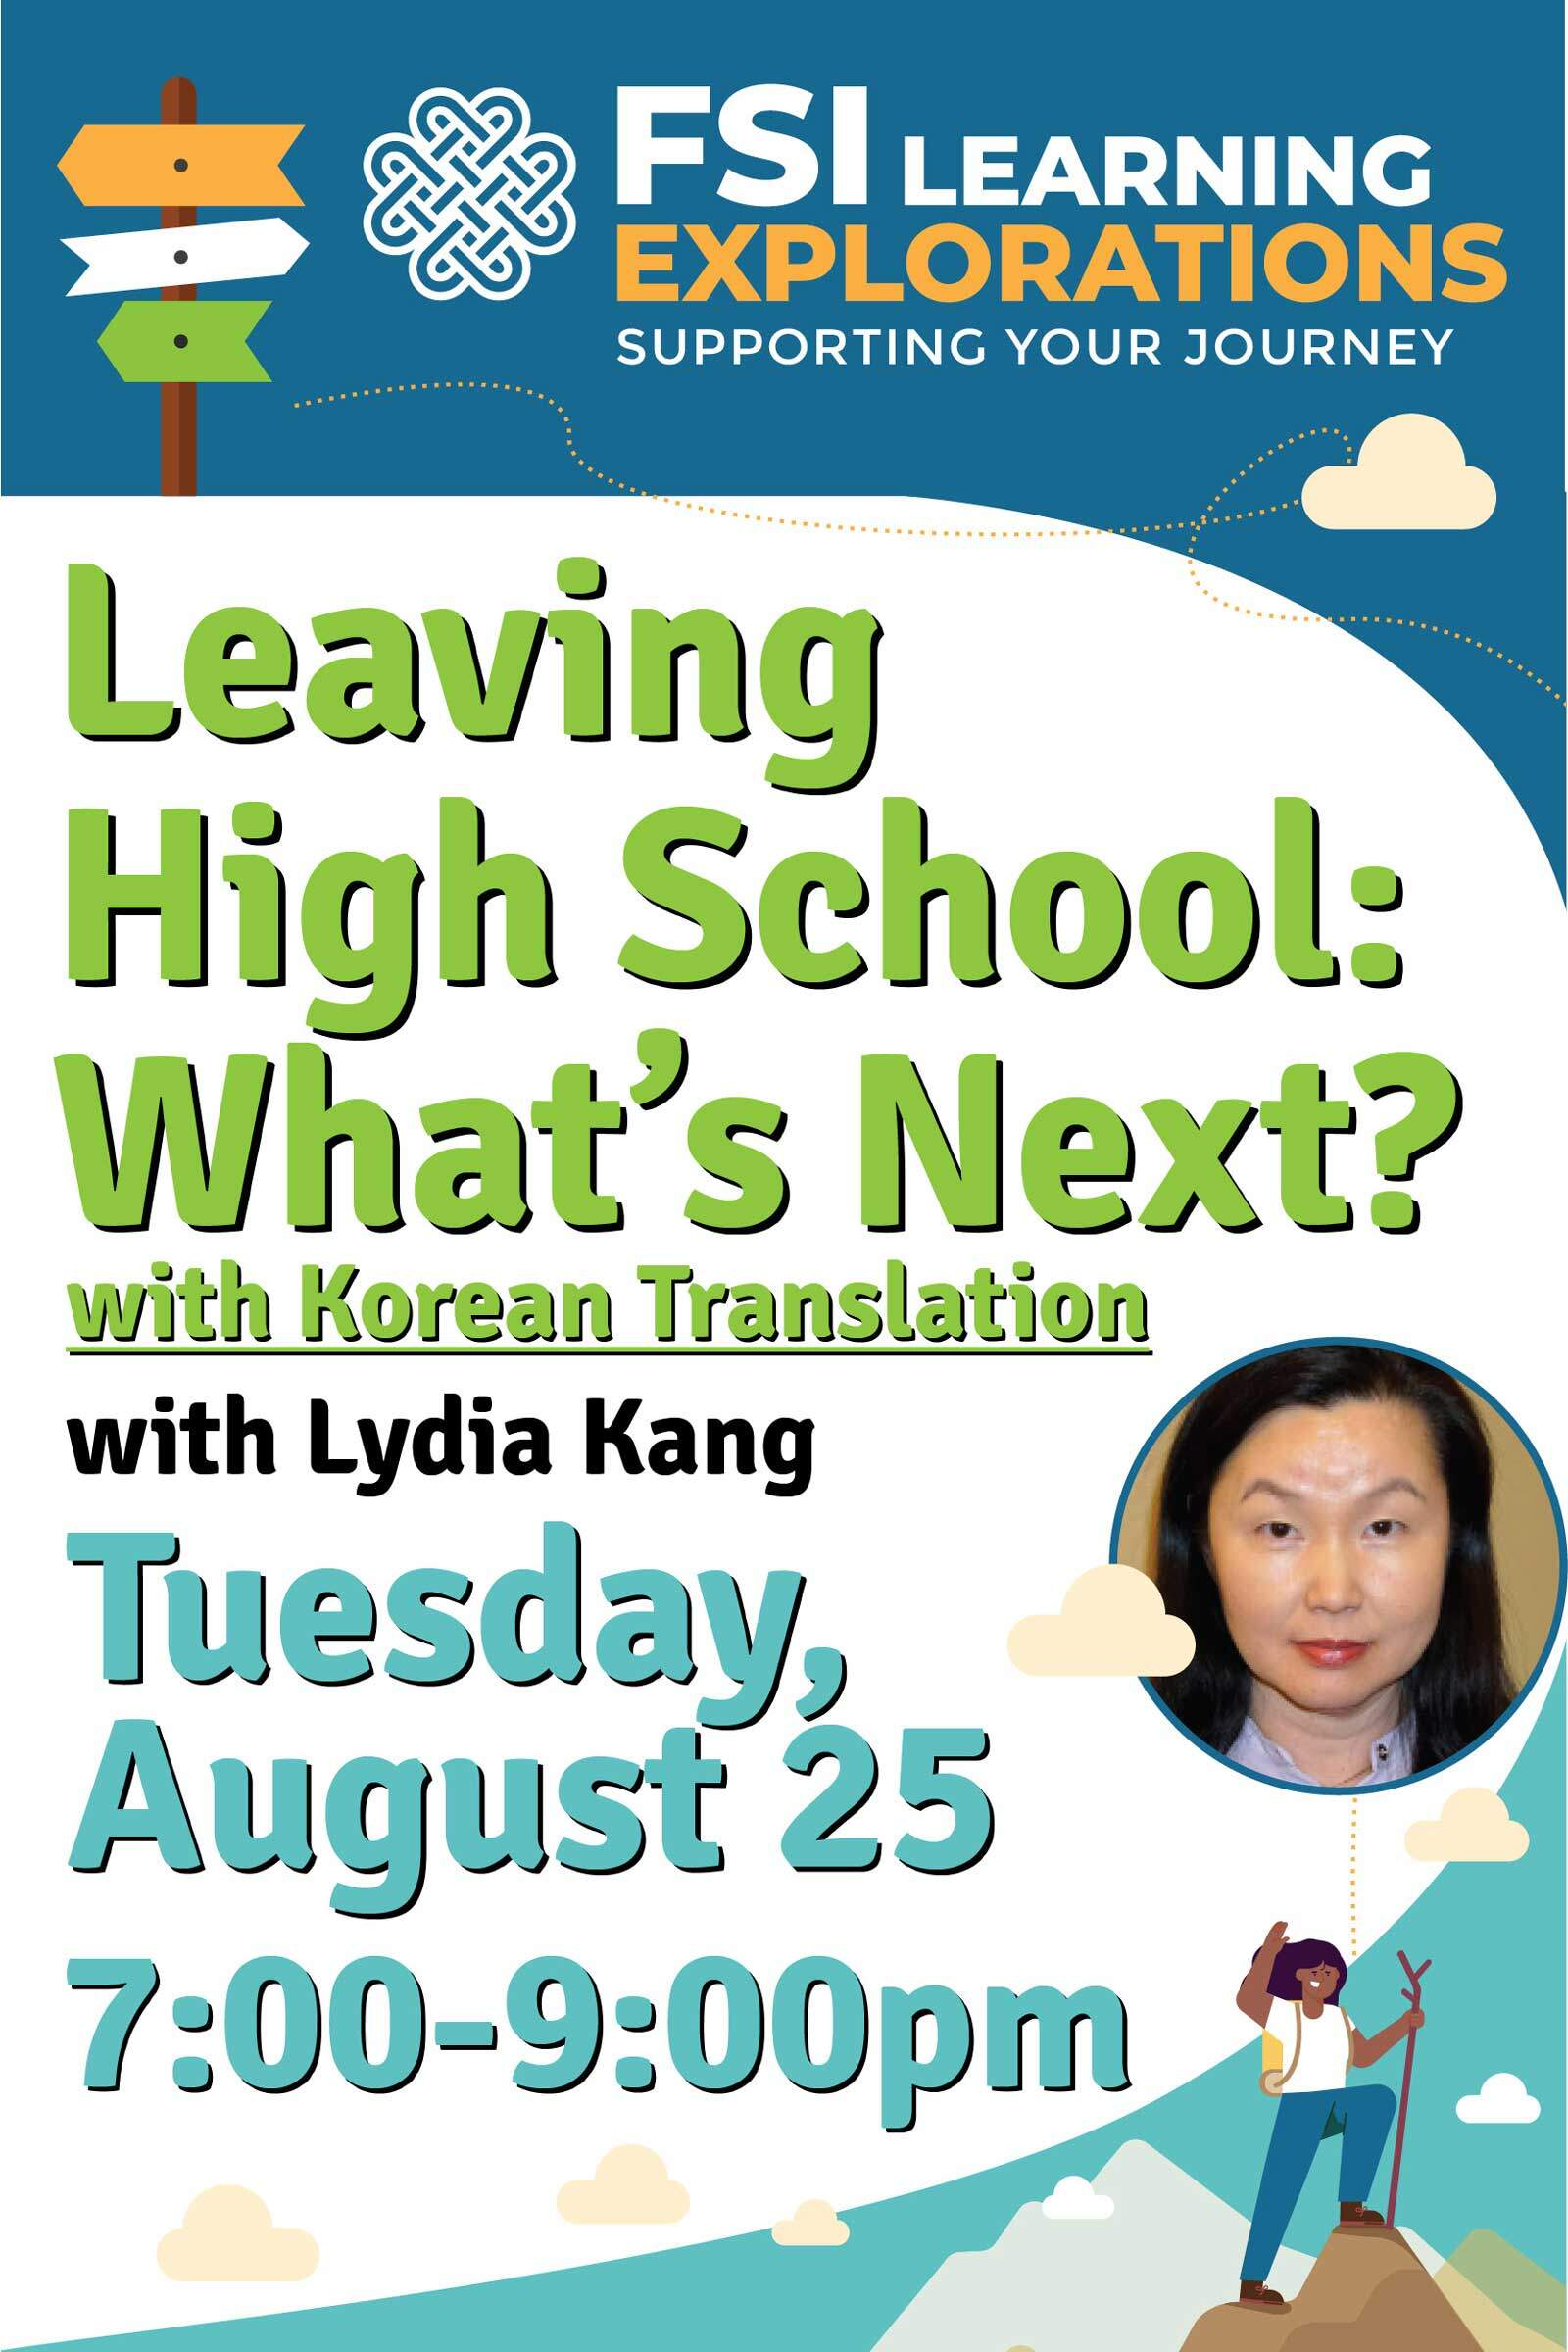 FSI Learning Explorations - Leaving High School: What's Next with Korean Translation